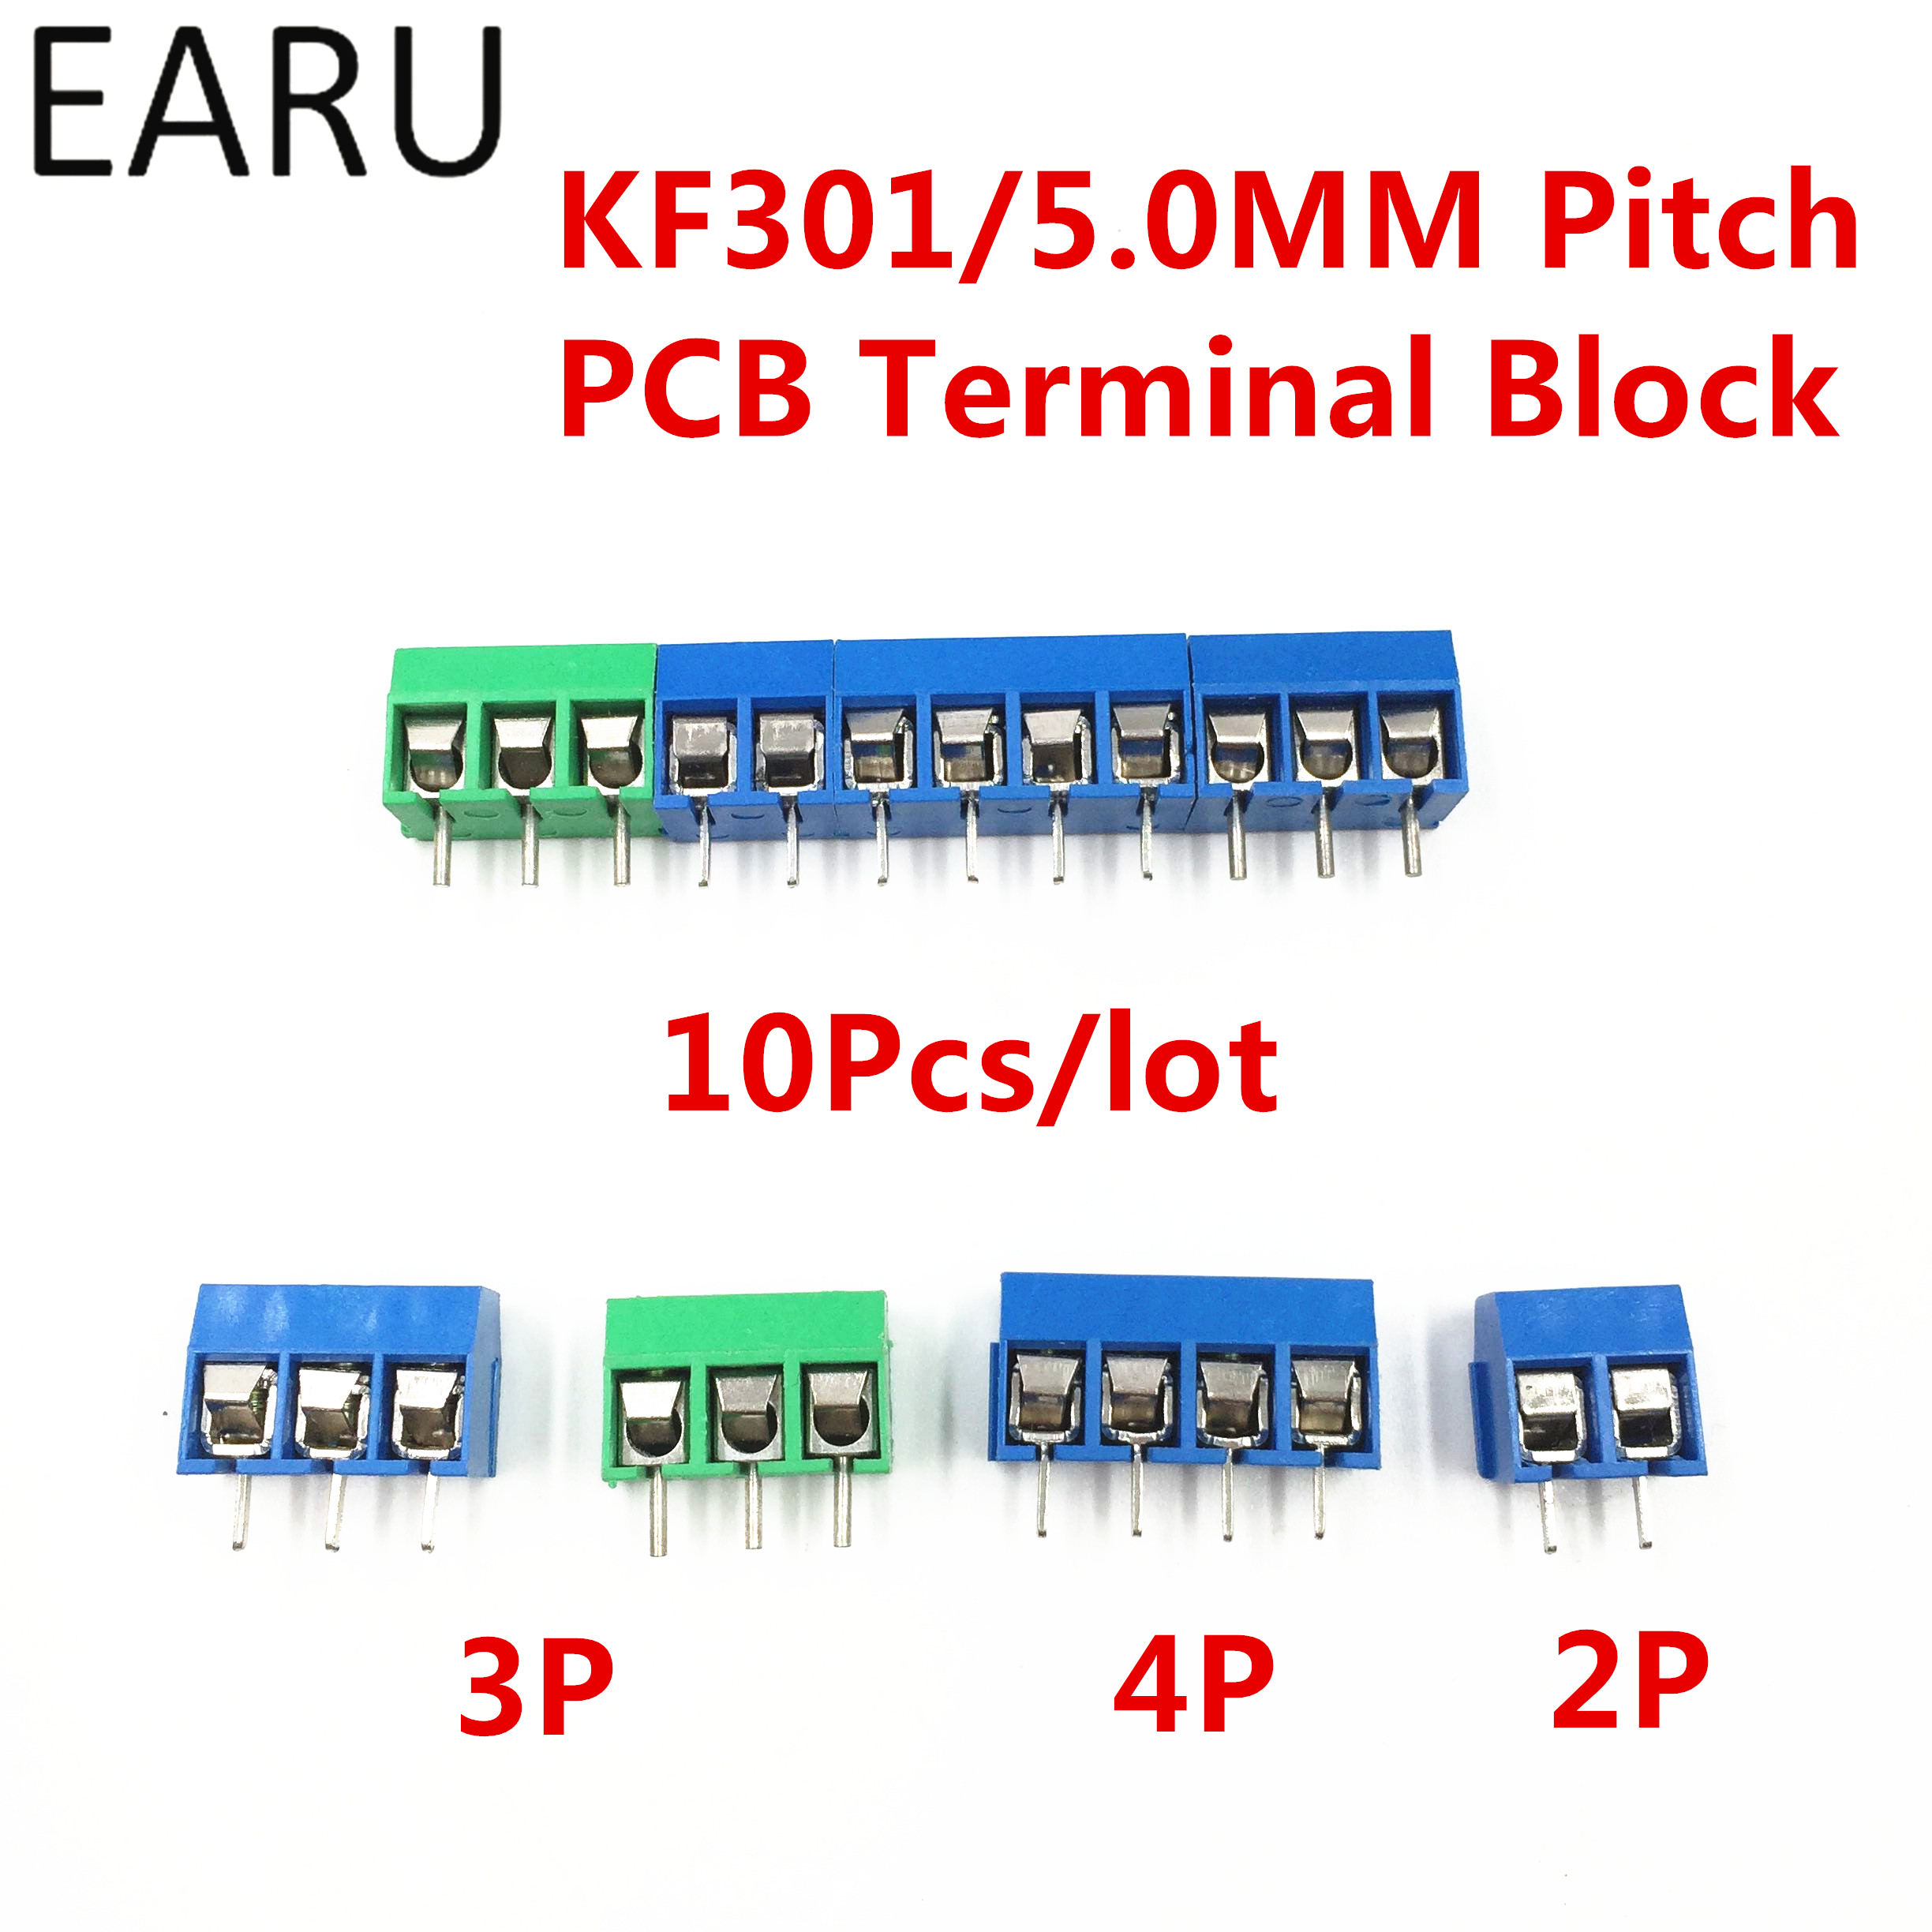 10Pcs/lot KF301-5.0-2P KF301-3P KF301-4P Pitch 5.0mm Straight Pin 2P 3P 4P Screw PCB Terminal Block Connector Blue Green free shipping one lot 50pcs 3 pin way 3 81mm pitch terminal block connector pcb mounted 1v 3 81 3p